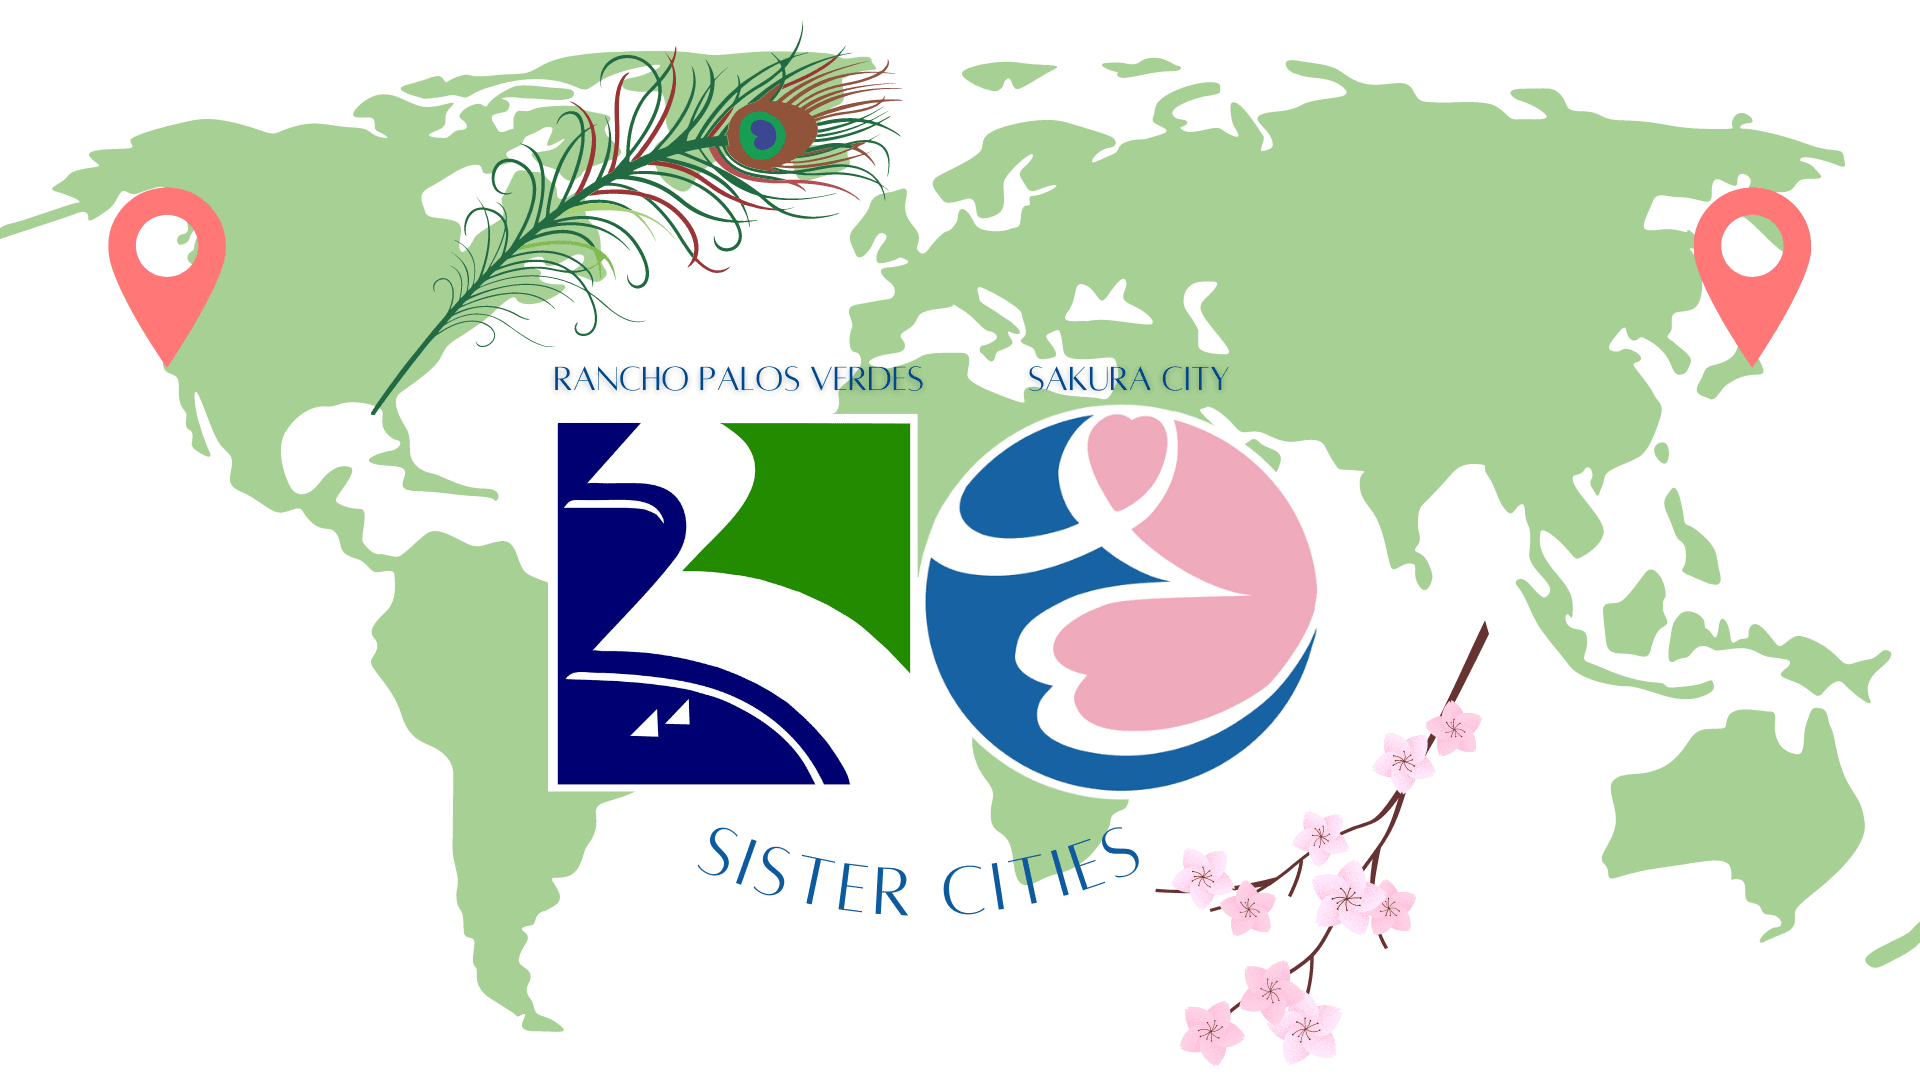 Sister Cities wide map